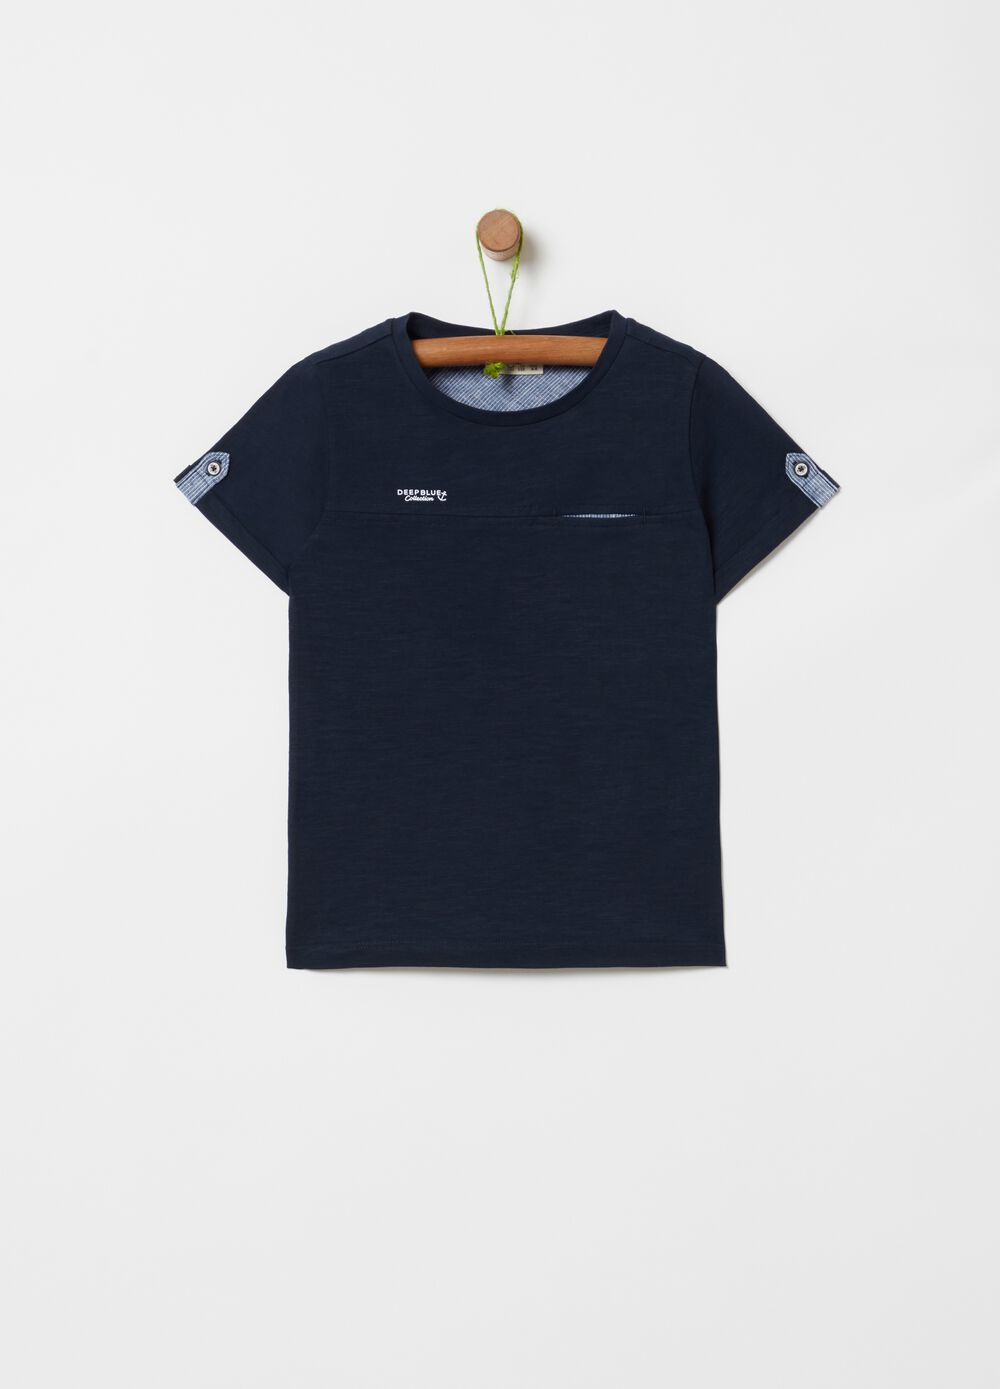 T-shirt in 100% cotton with slub weave